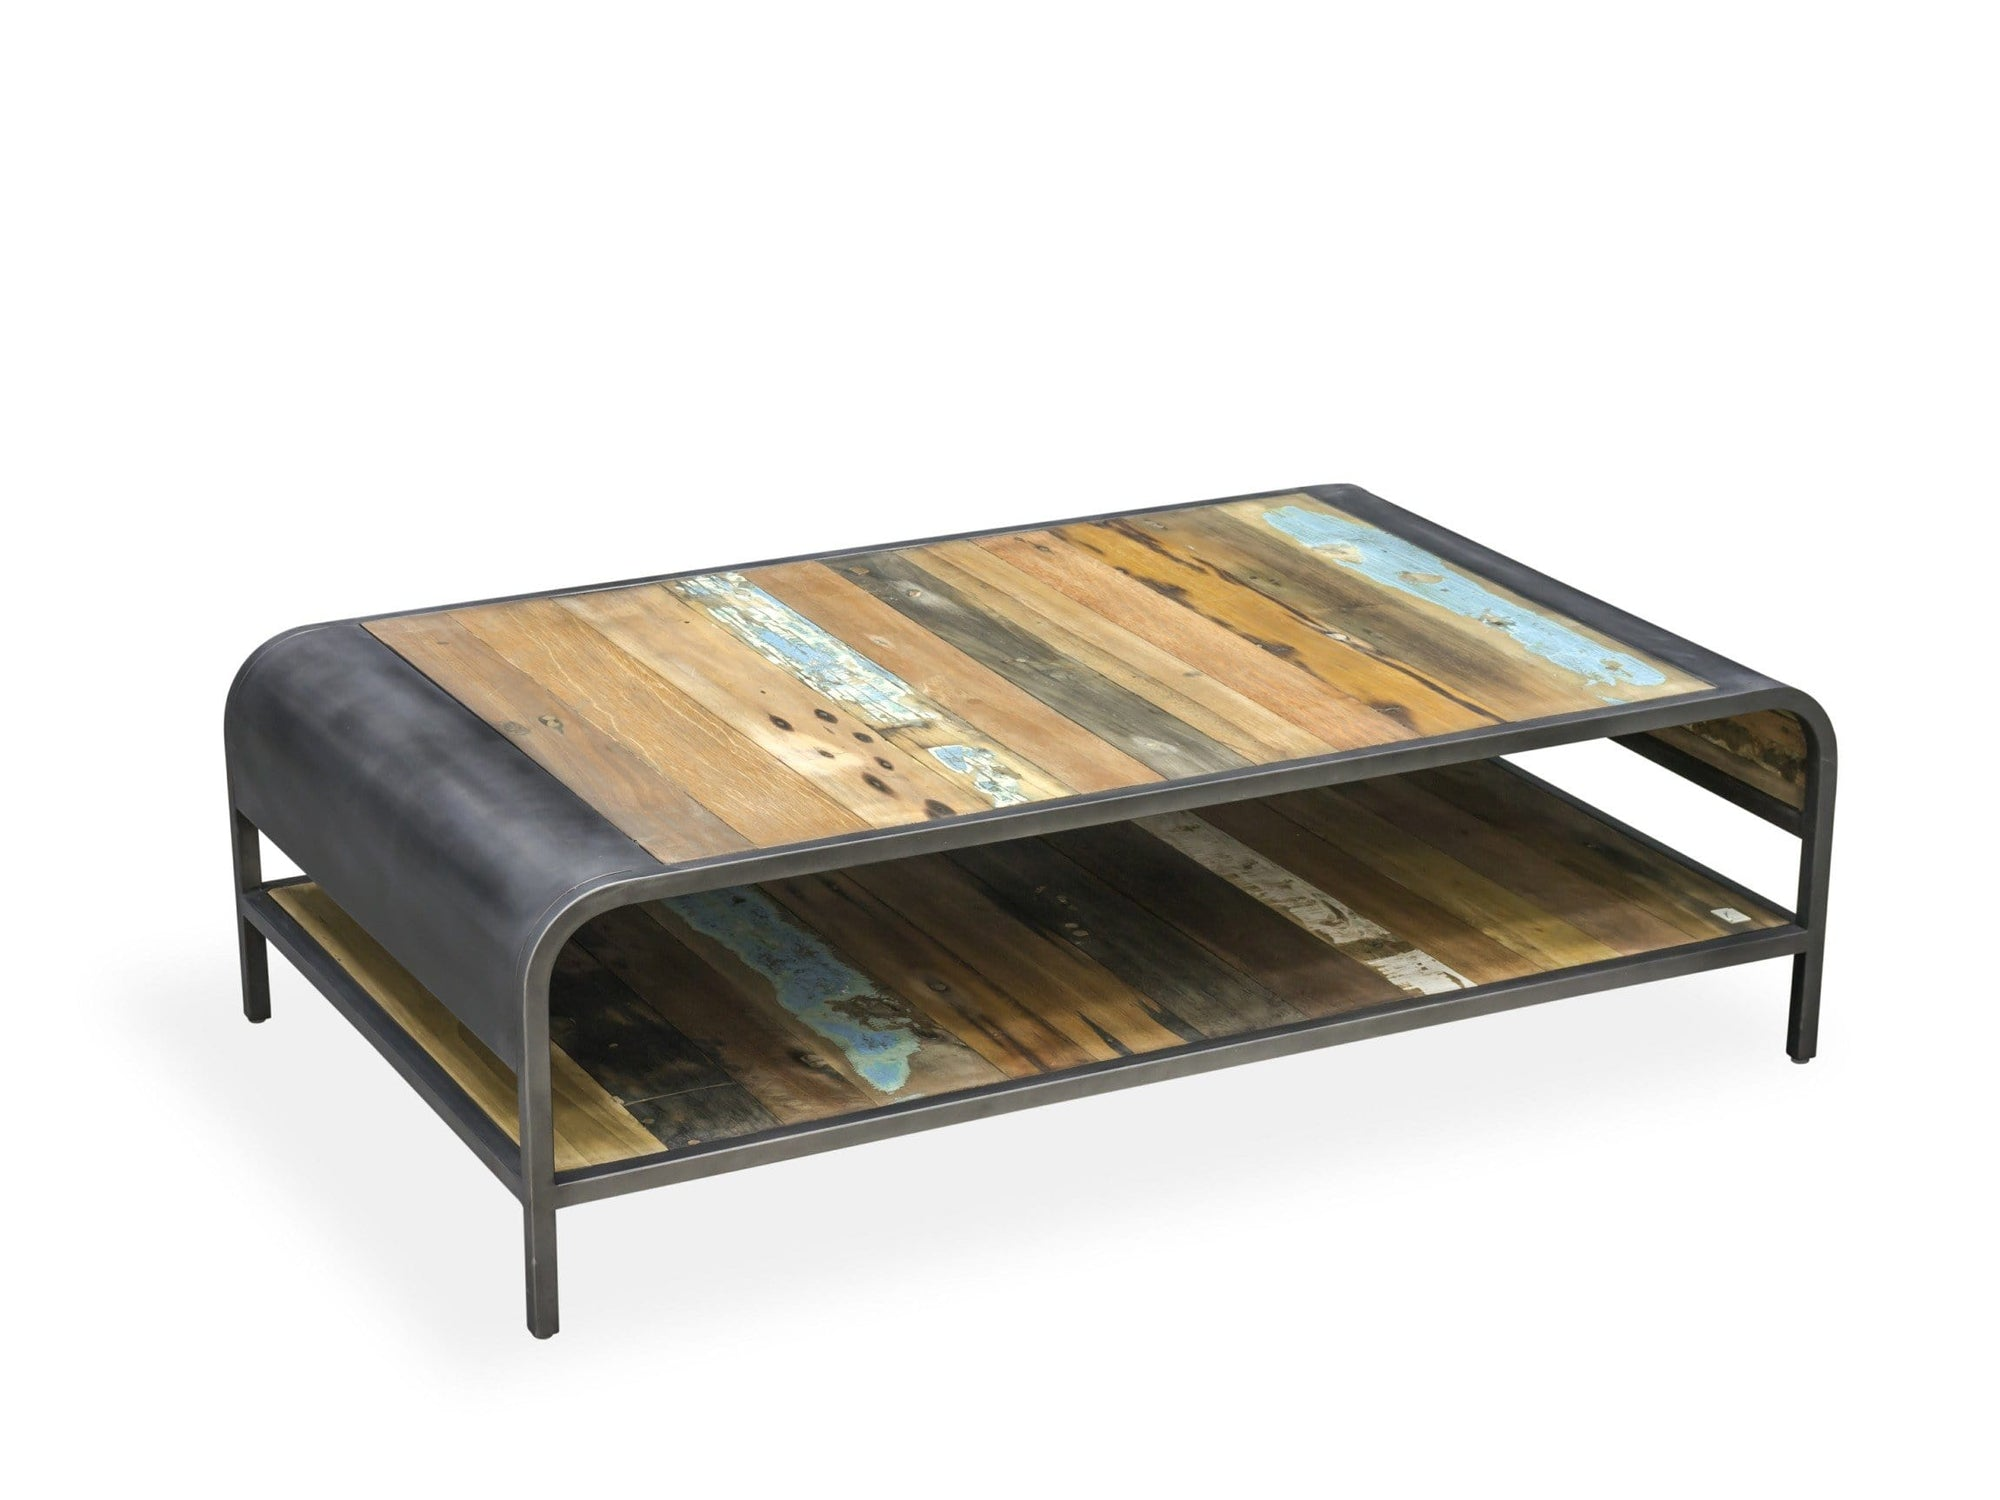 Bristol range coffee table, with reclaimed wood top and under shelf, plus steel frame